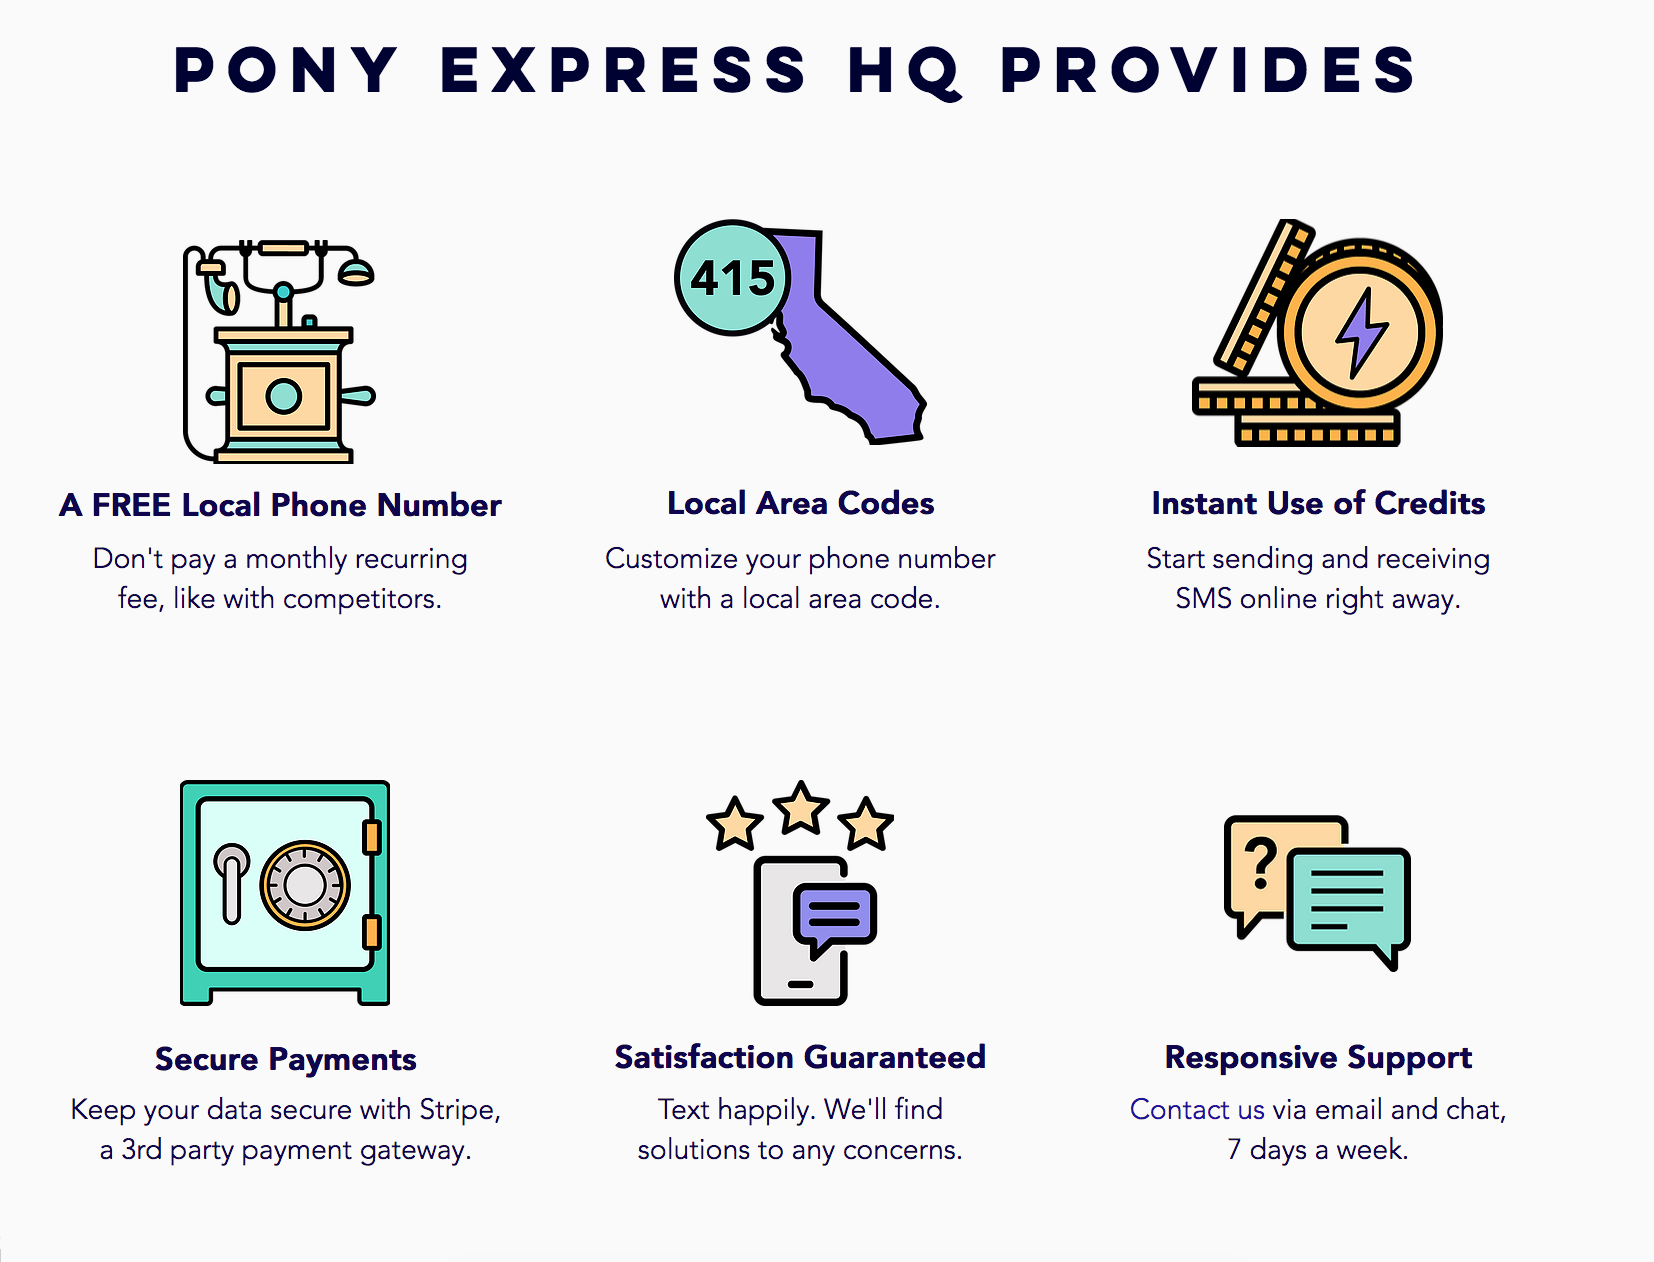 Pony Express HQ Demo - PonyExpress-Provides.png